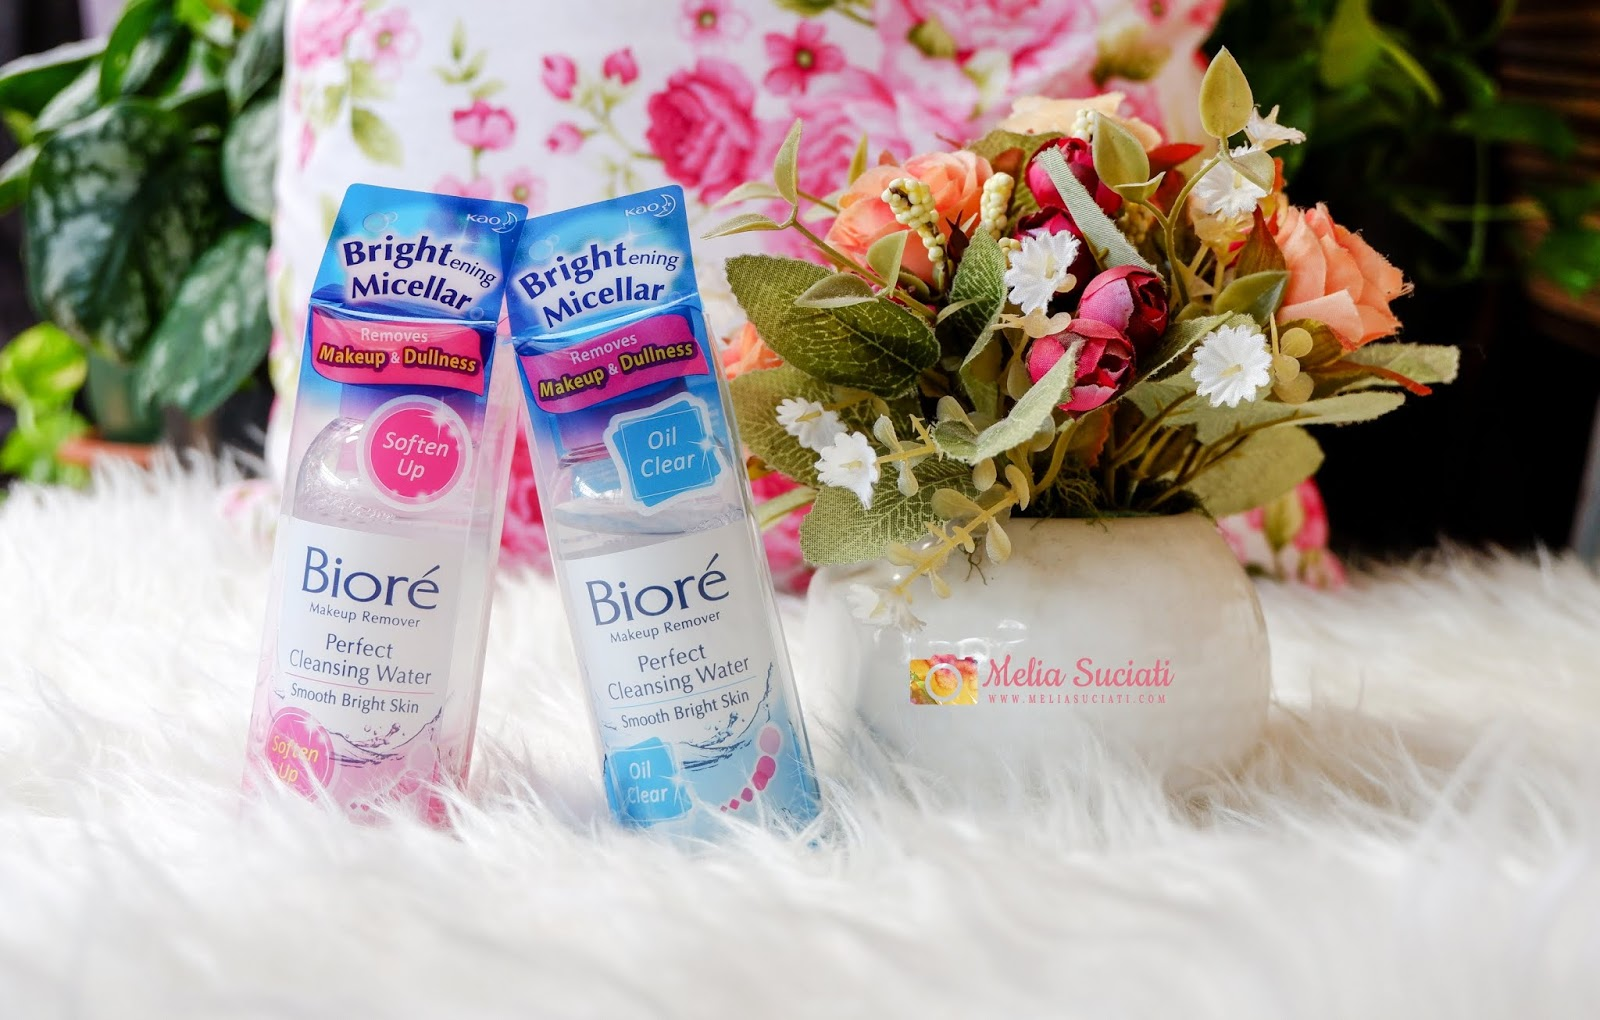 Review Biore Perfect Cleansing Water Oil Clear